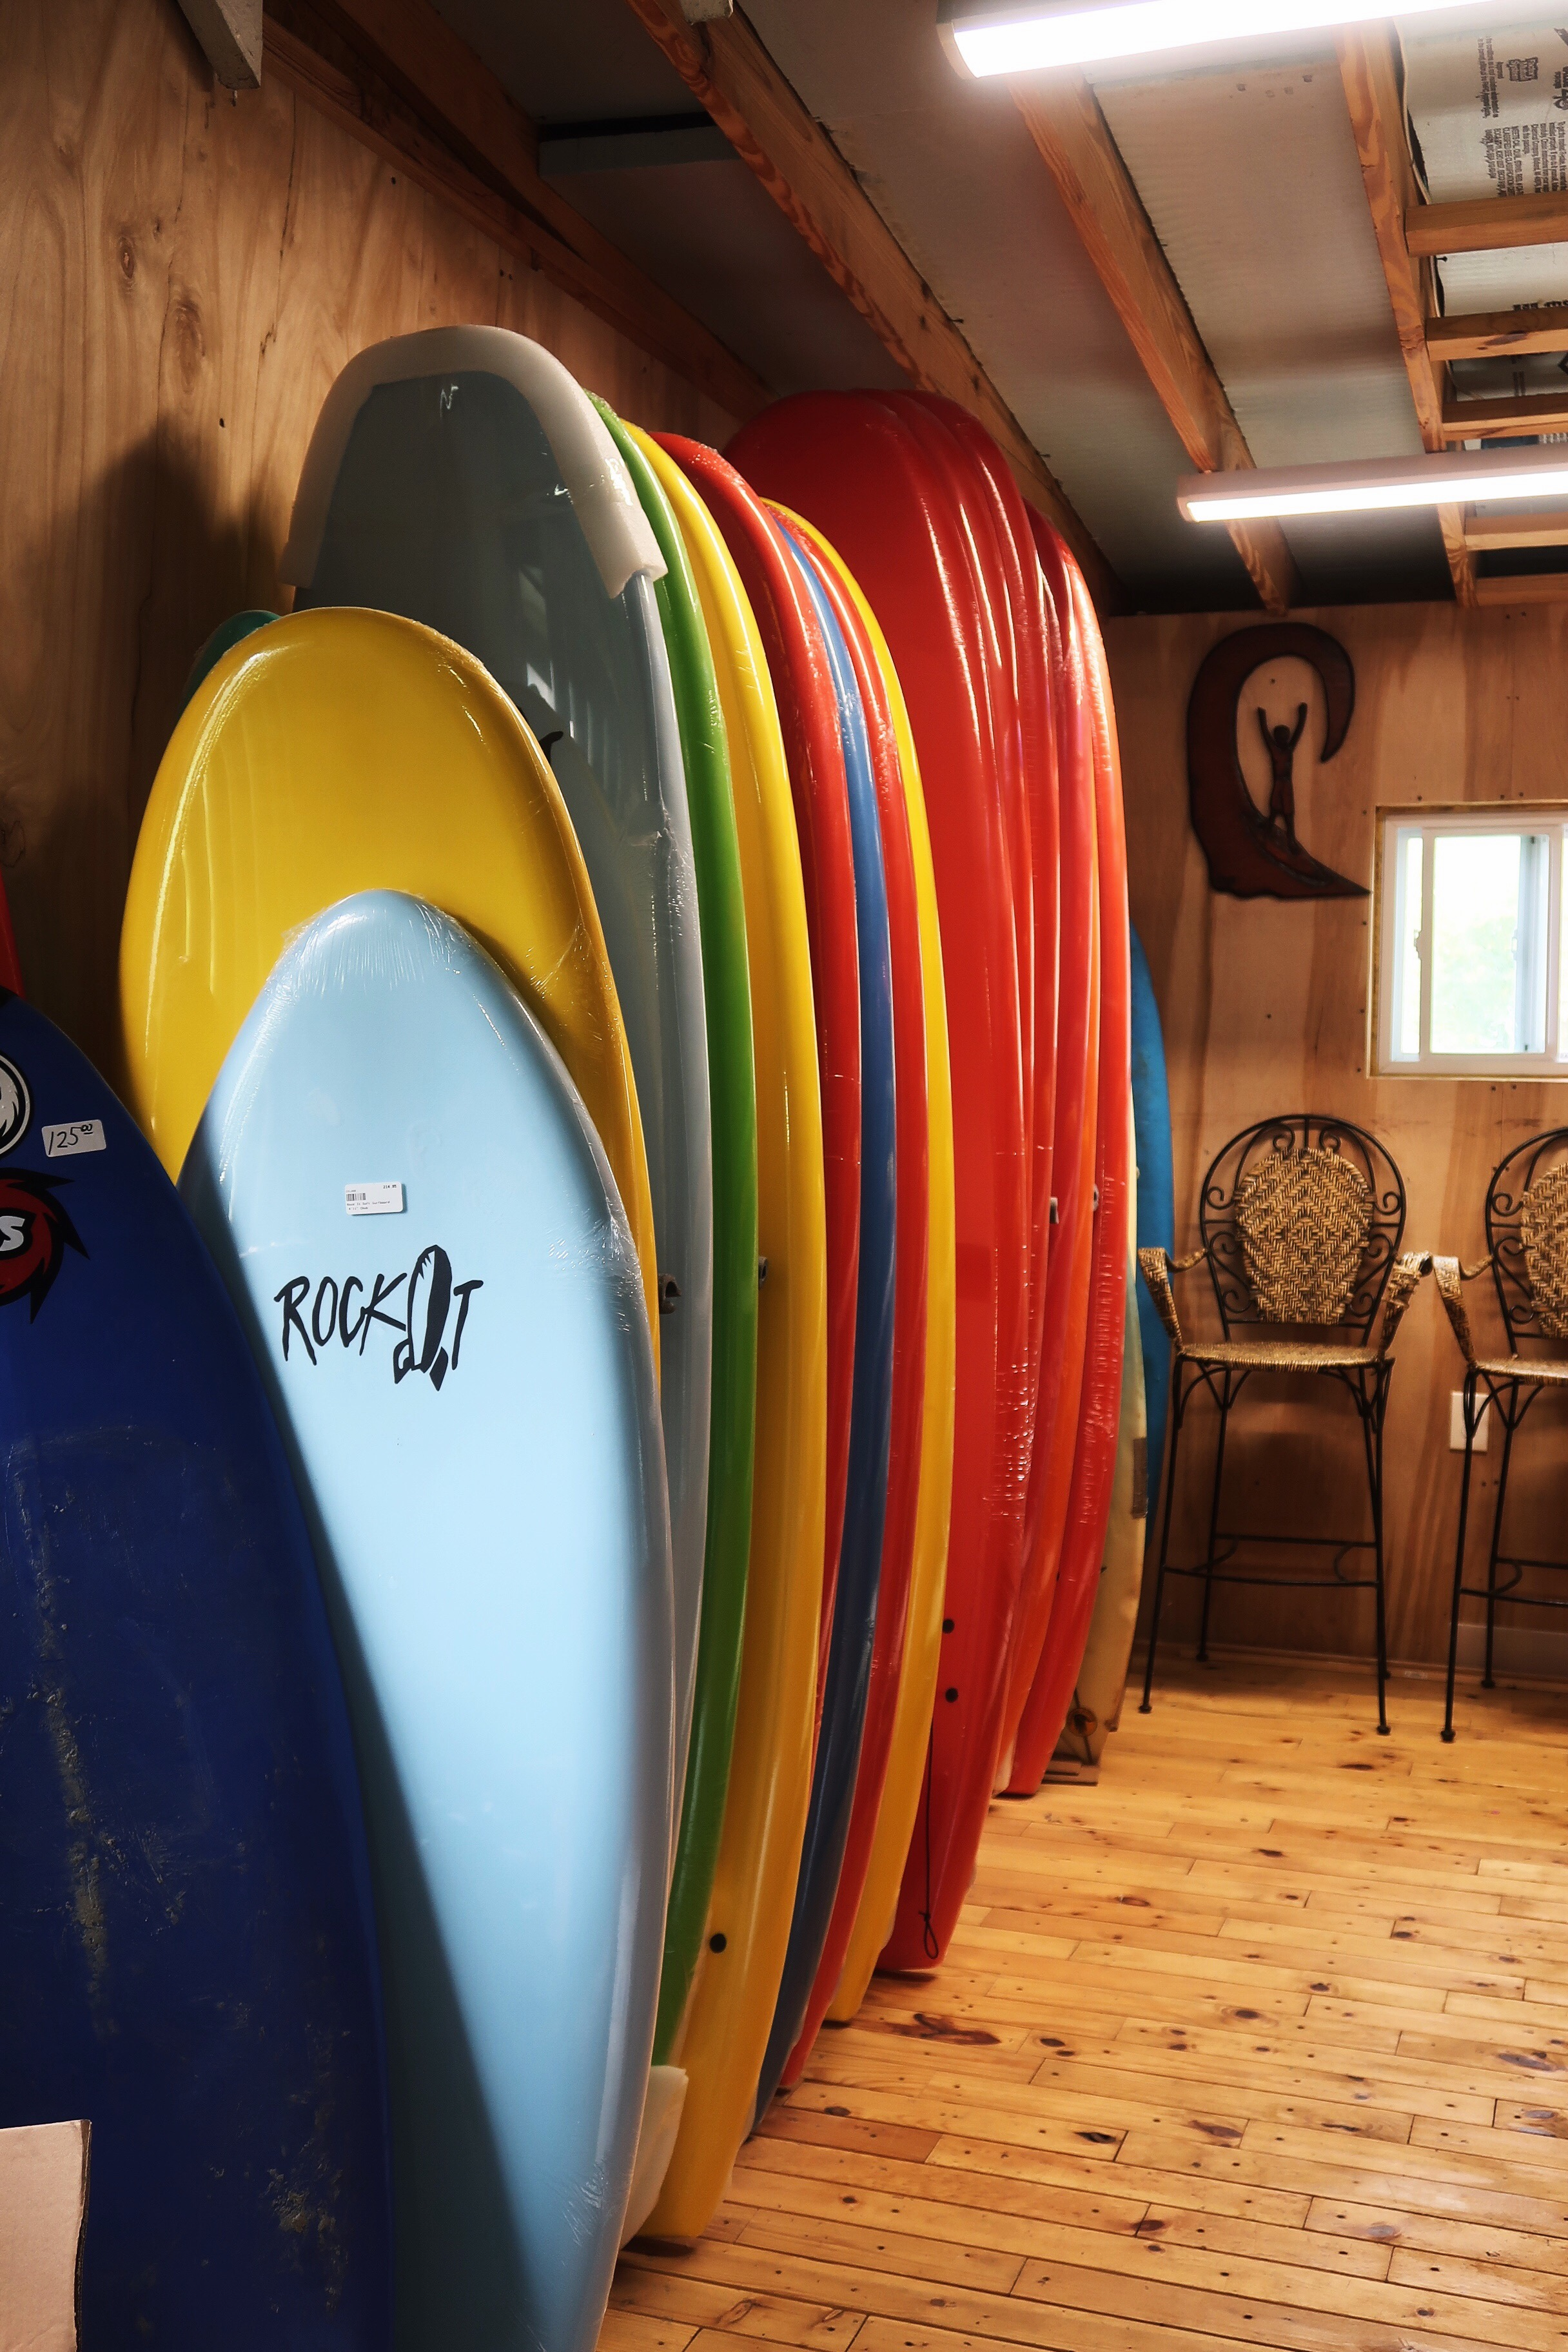 Surf Shop next door | 隔壁的衝浪店